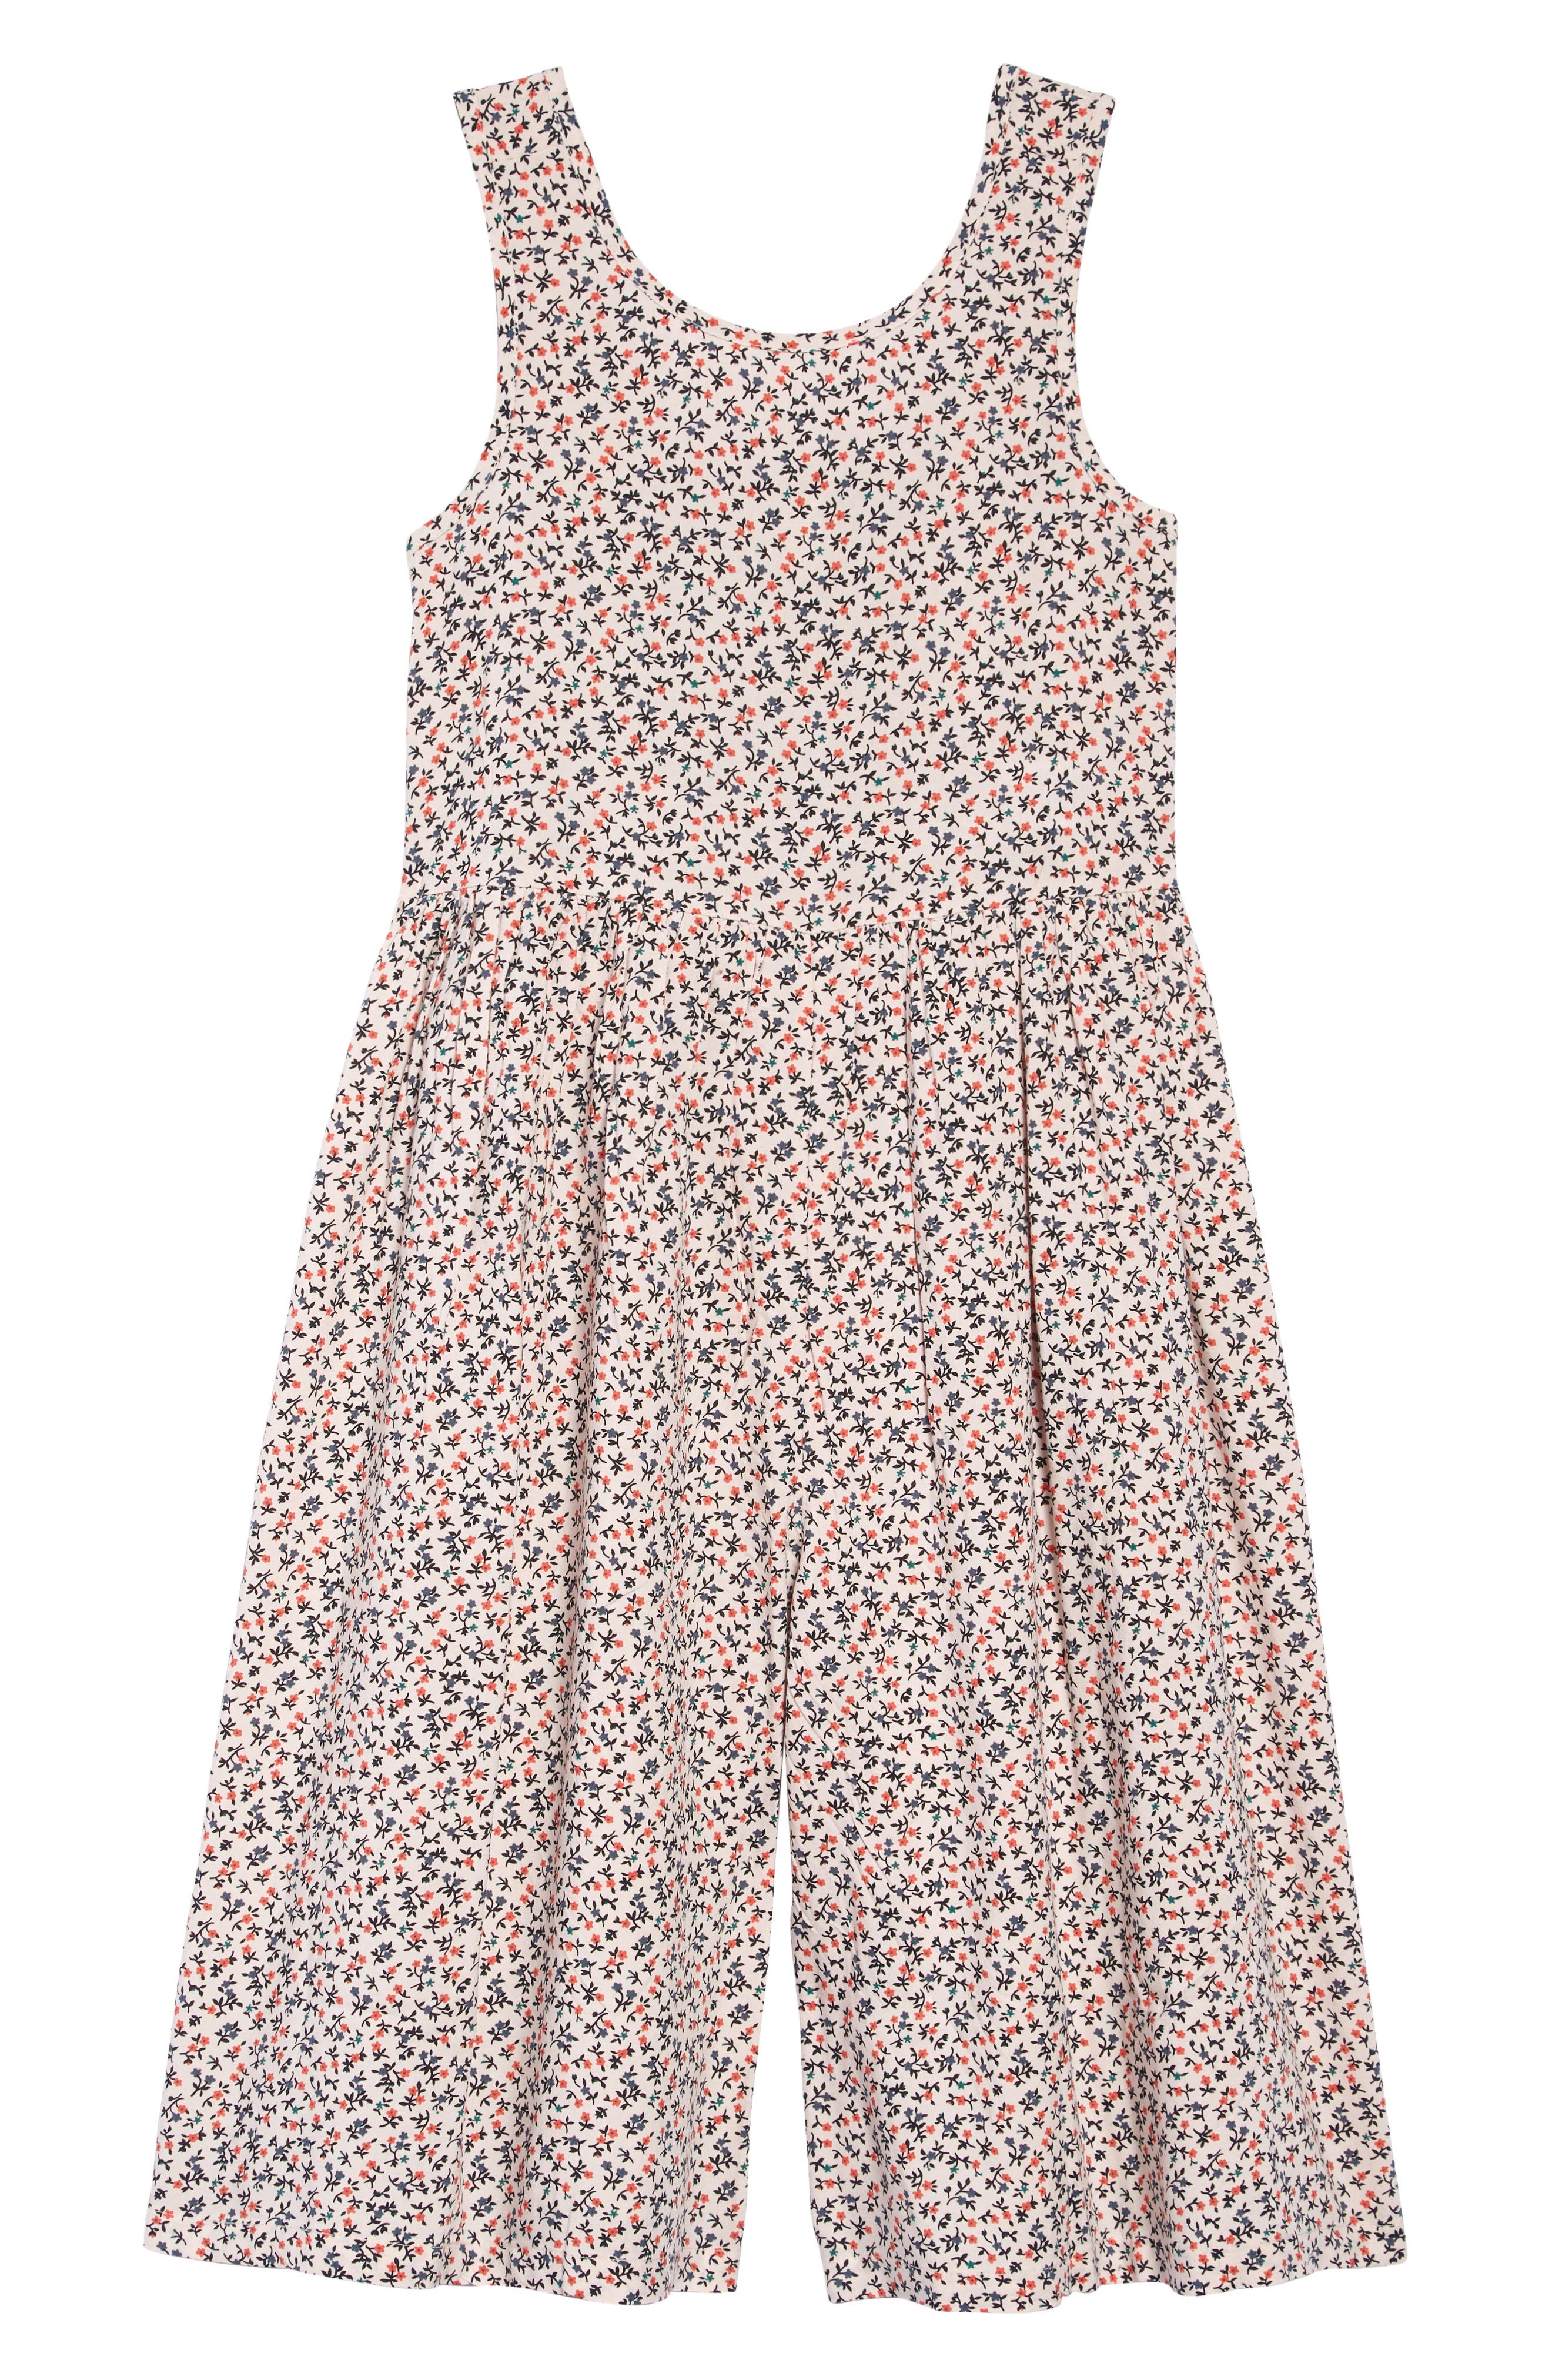 TUCKER + TATE Print Romper, Main, color, PINK AMOUR SCATTERED DAISY